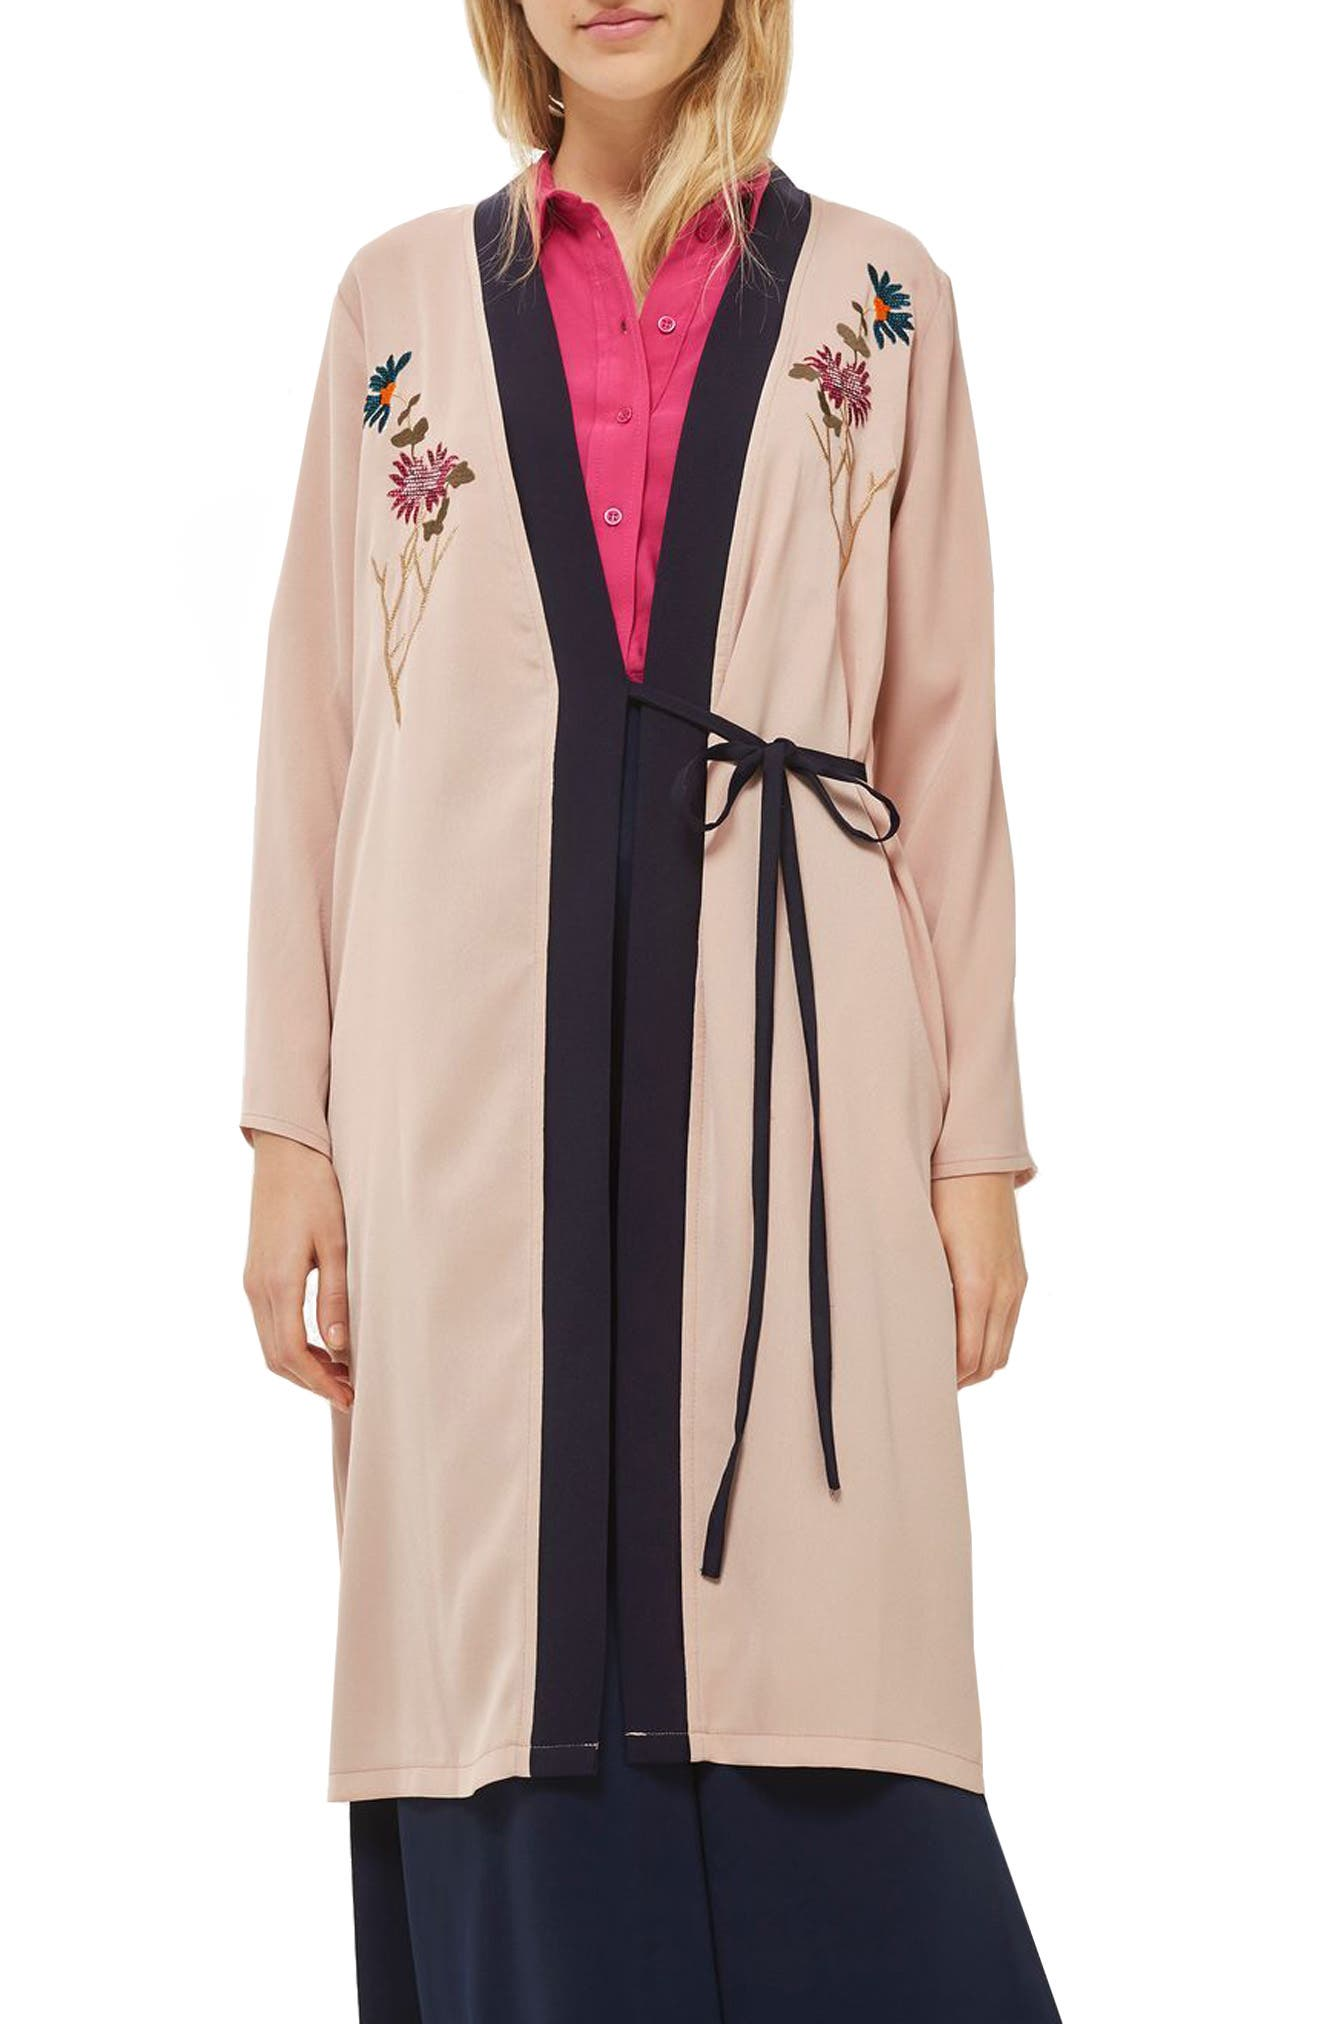 Tiger Embroidered Duster Coat,                         Main,                         color, 250